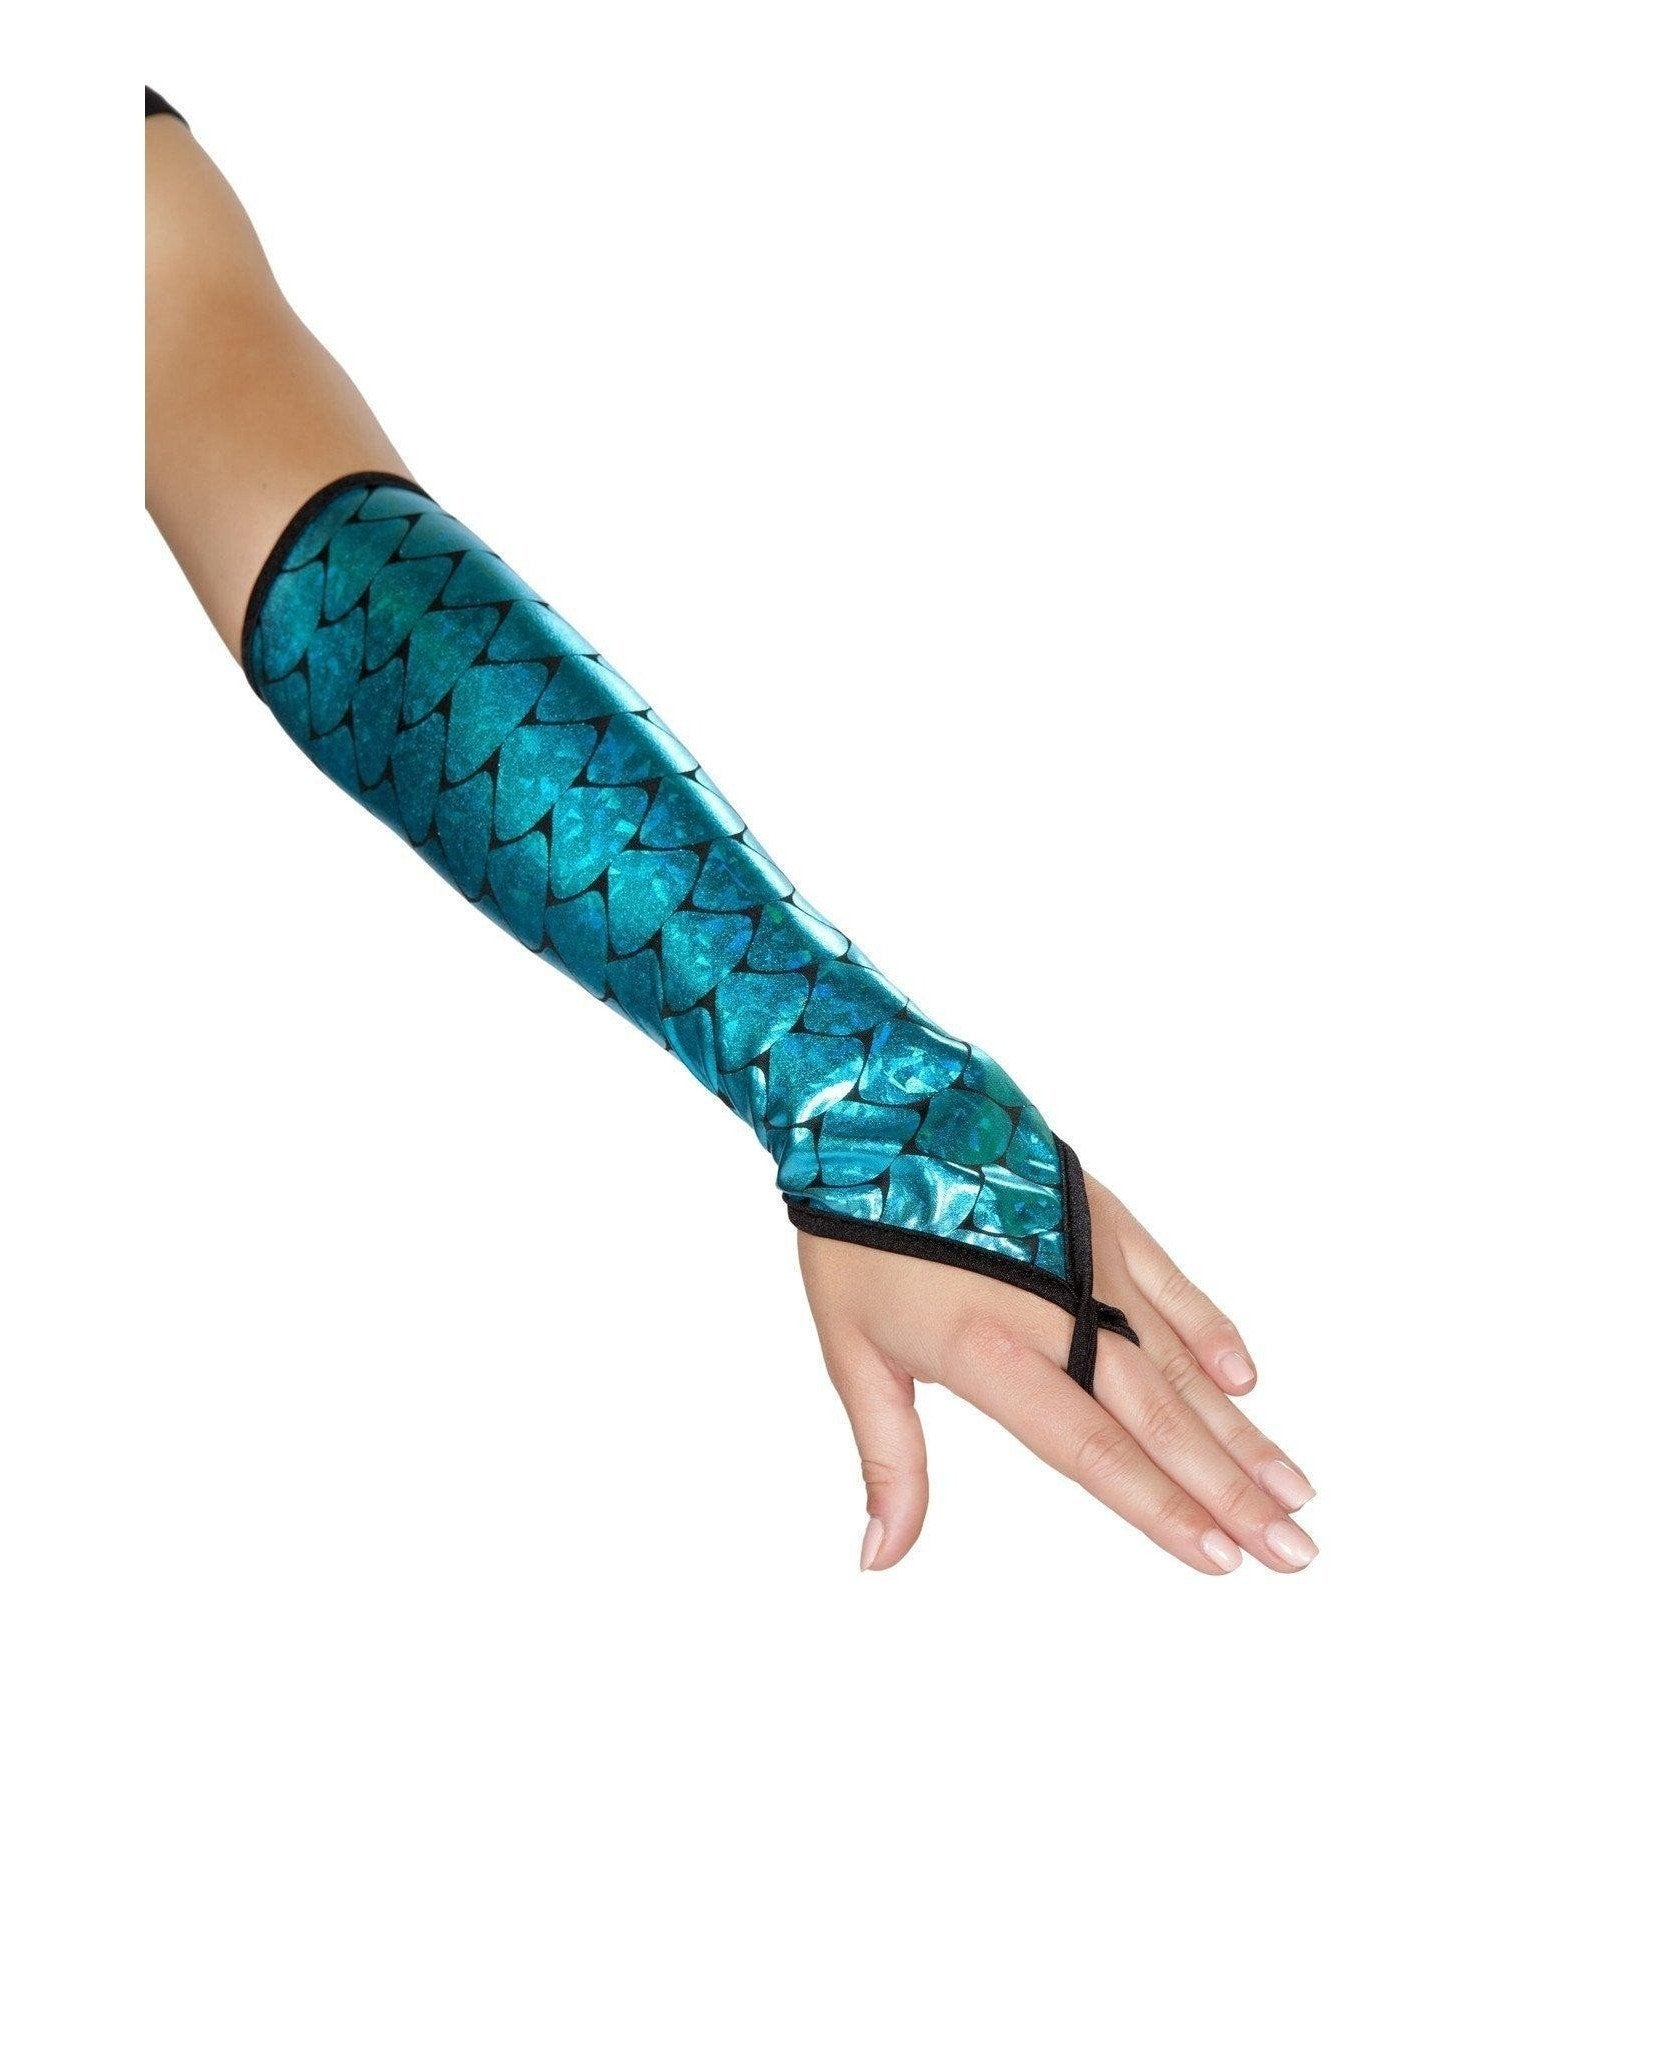 Mermaid Costume Fingerless Gloves Accessories Size One SizeColor BlackNakees